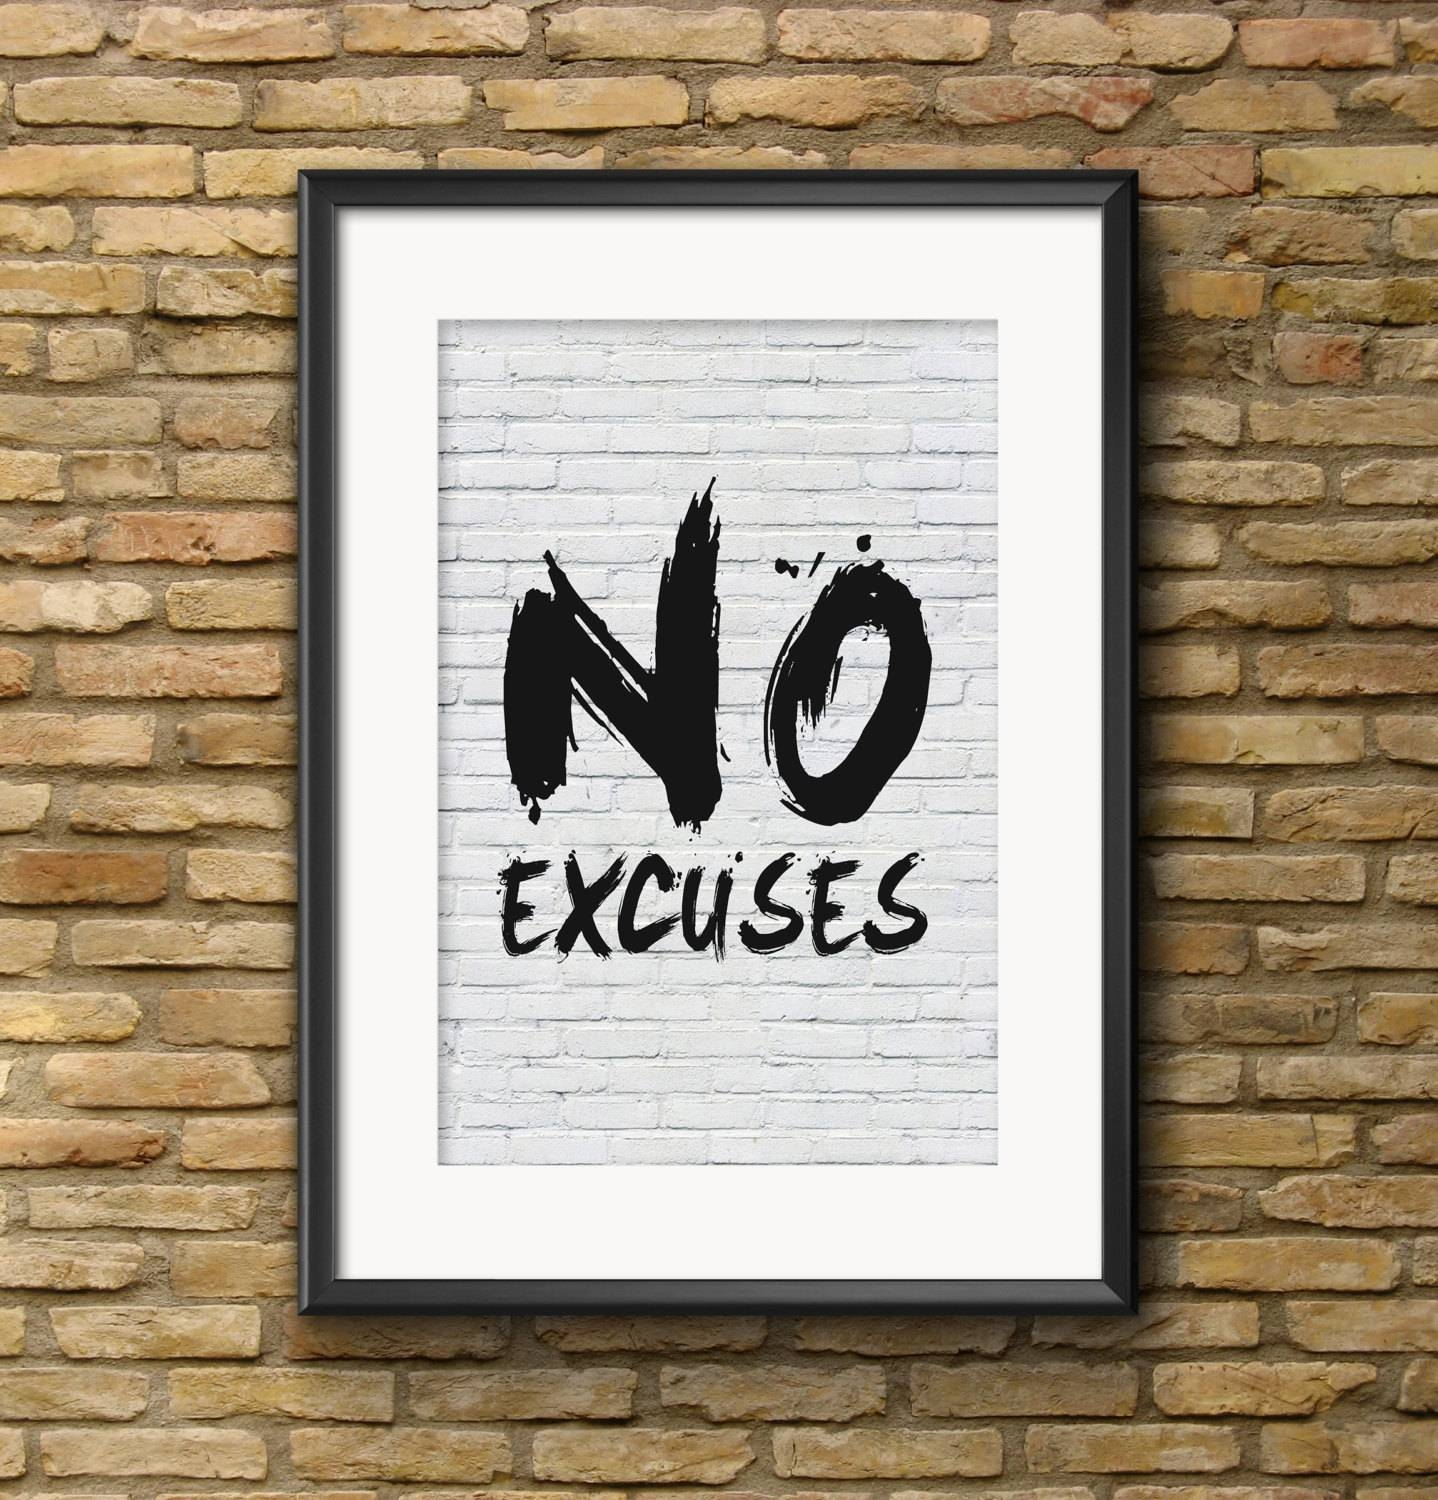 inspirational wall art for office. Brilliant Office No Excuses Printable Wall Art U201cNo Excusesu201d Motivational Art With  Recent Inspirational For Office R